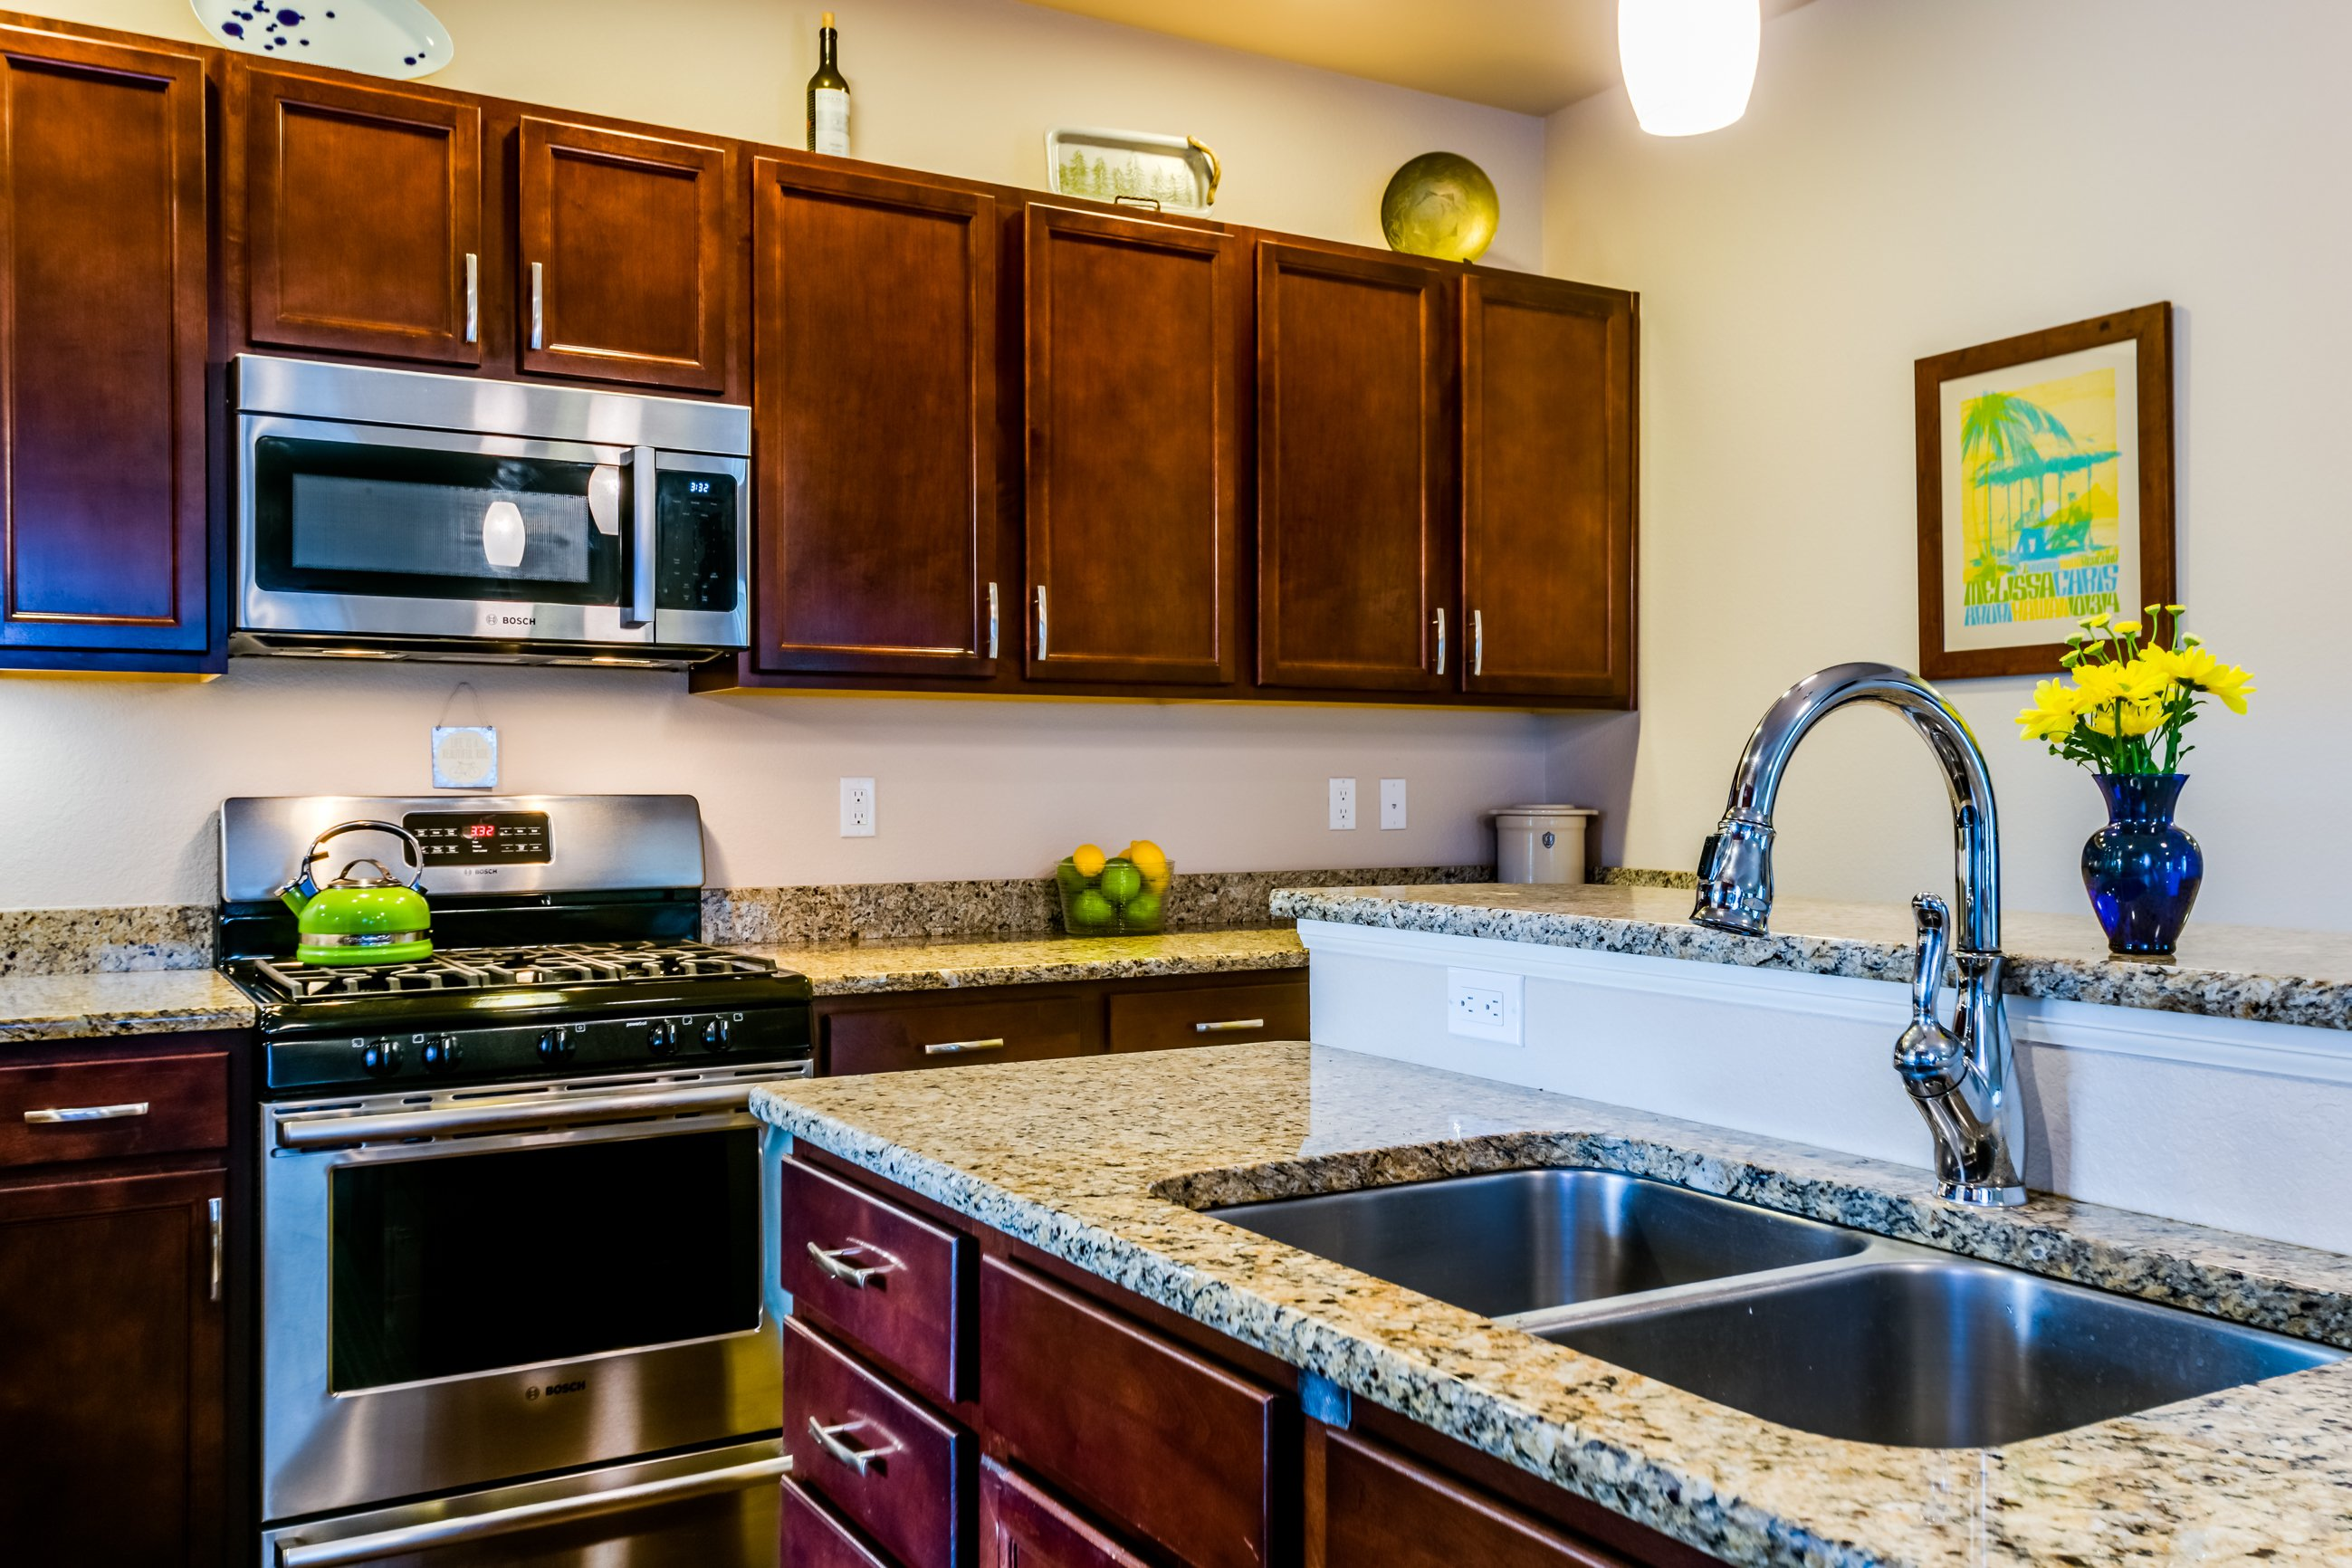 Picture of the dual kitchen sinks in the kitchen at 166 Autumn Bell